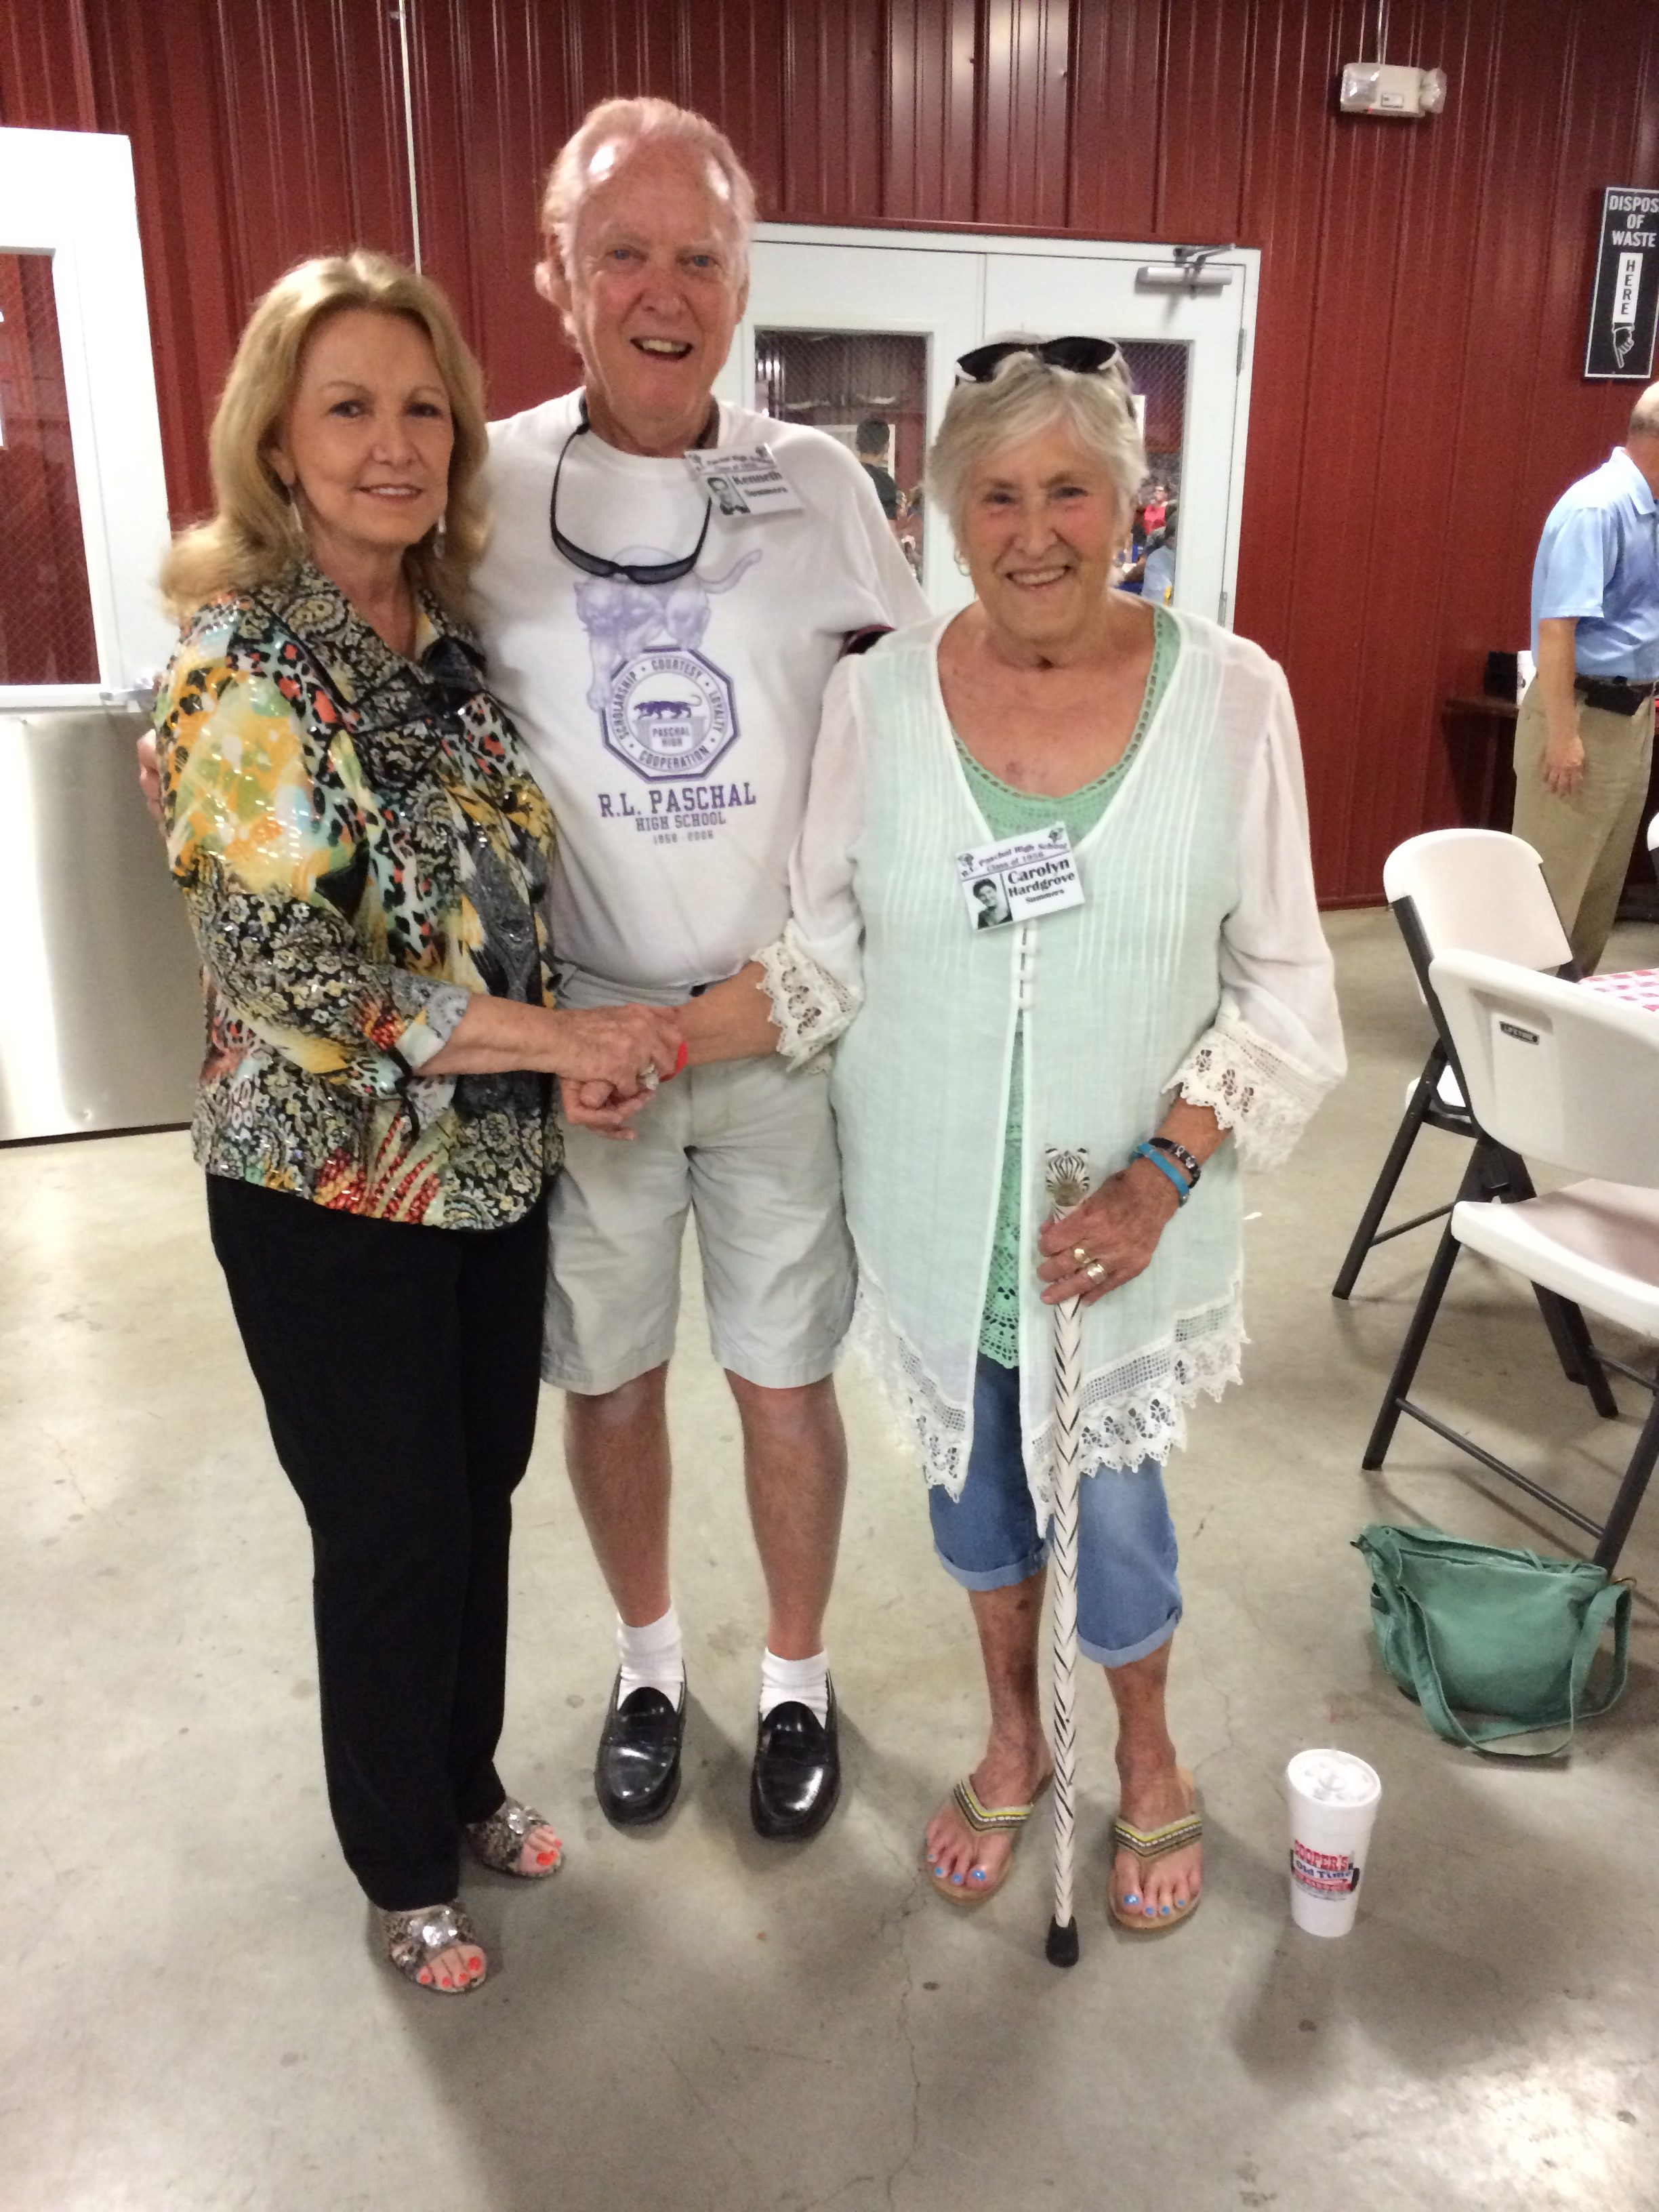 Wanda Cunningham Walker, Ken Summers and Carolyn Hardgrove Summers